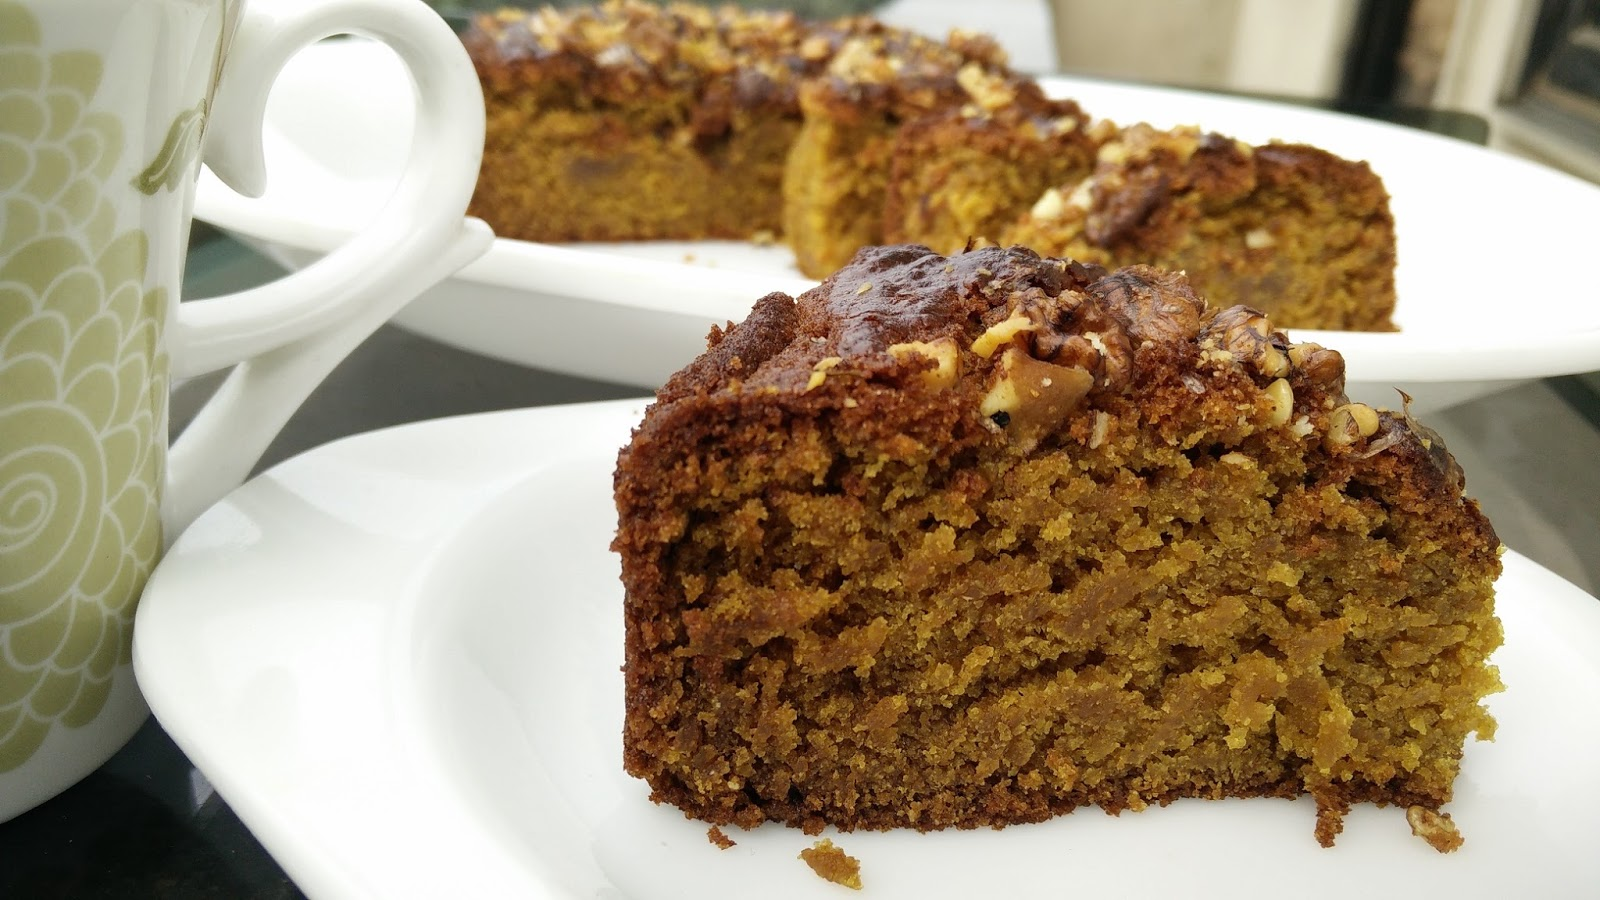 Cake Recipe With Kadai: Eggless Whole Wheat Jaggery Cake